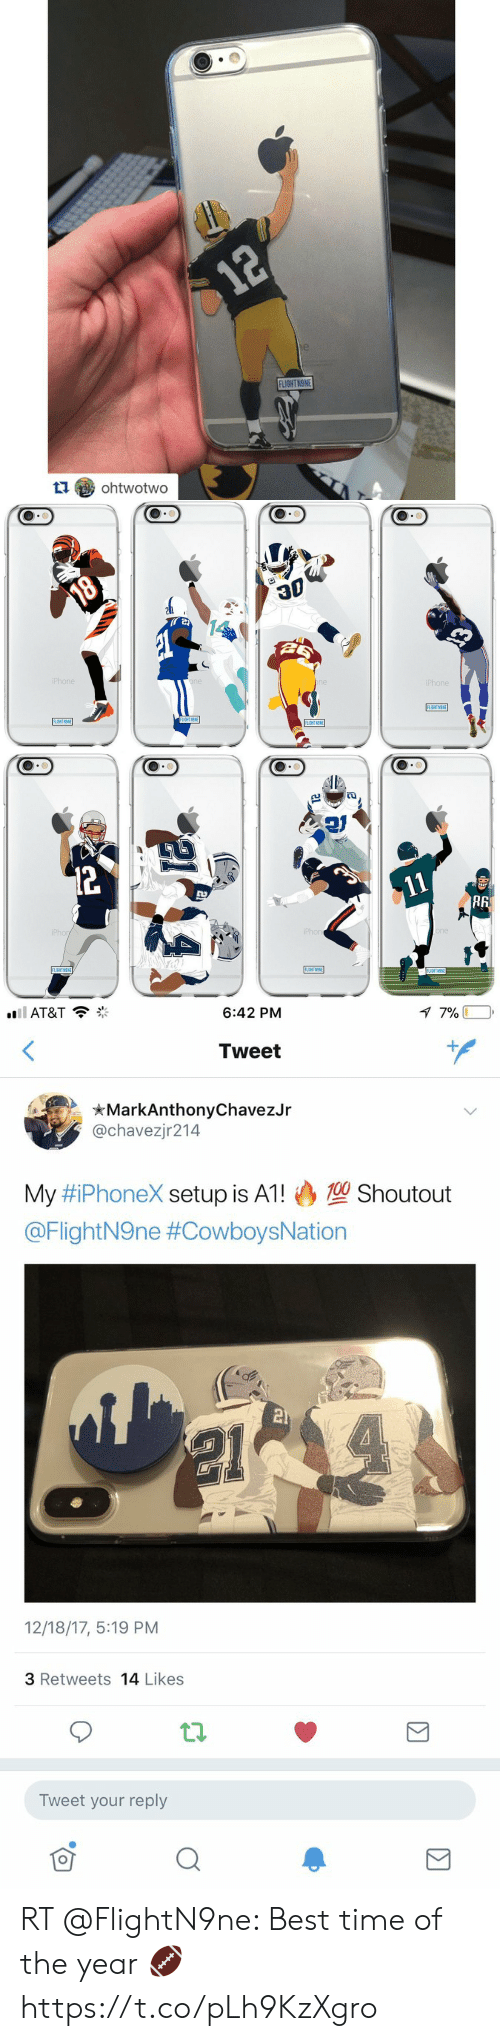 iphon: 12  12  e  FLIGHT NONE  ohtwotwo   18  iPhone  one  one  iPhone  FLIGHT NONE  FLIGHT N9NE  FLIGHT NSNE  FLIGHT NONE  12  11  iPhon  iPhone  one  FLIGHTN9NE  FLIGHTN9NE  FLIGHT N9NE   7 7%  ll AT&T  6:42 PM  Tweet  MarkAnthonyChavezJr  @chavezjr214  100 Shoutout  My #iPhoneX setup is A1!  @FlightN9ne #CowboysNation  21  12/18/17, 5:19 PM  3 Retweets 14 Likes  Tweet your reply RT @FlightN9ne: Best time of the year ? https://t.co/pLh9KzXgro